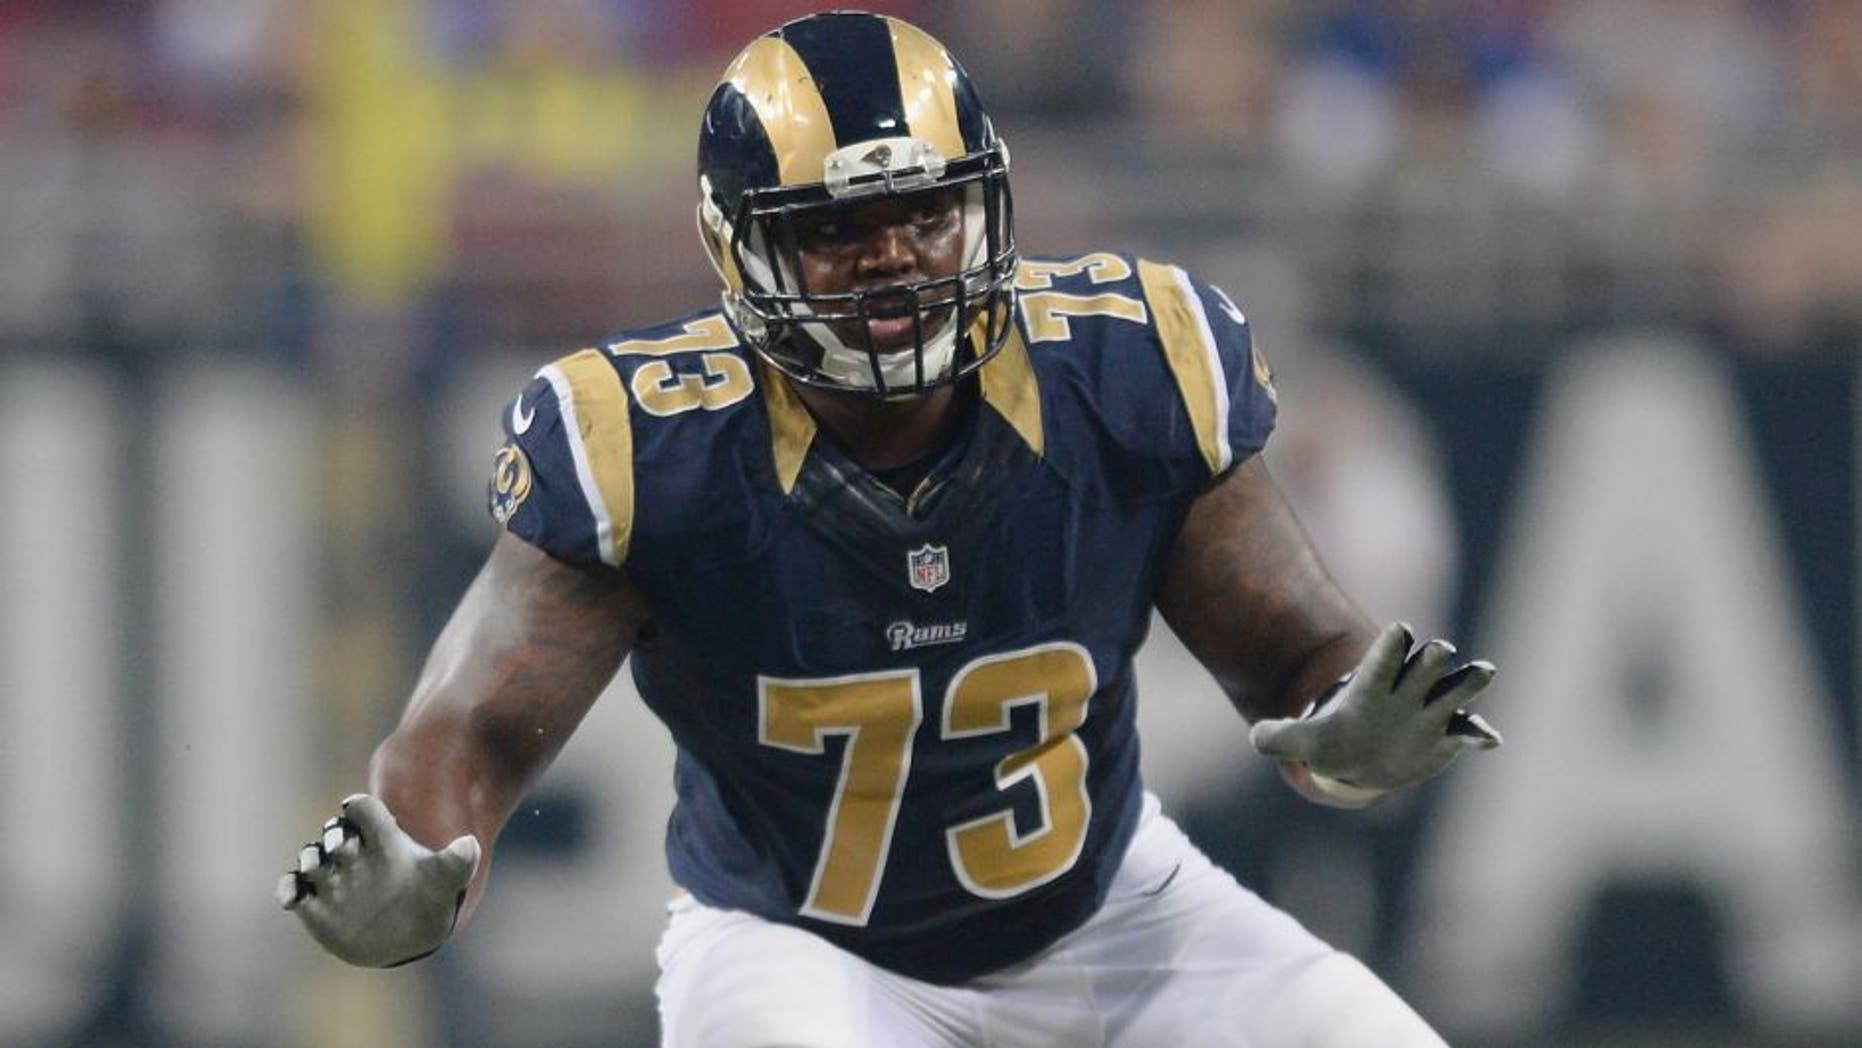 ST. LOUIS, MO - DECEMBER 13: Greg Robinson #73 of the St. Louis Rams against the Detroit Lions at the Edward Jones Dome on December 13, 2015 in St. Louis, Missouri. (Photo by Michael B. Thomas/Getty Images)